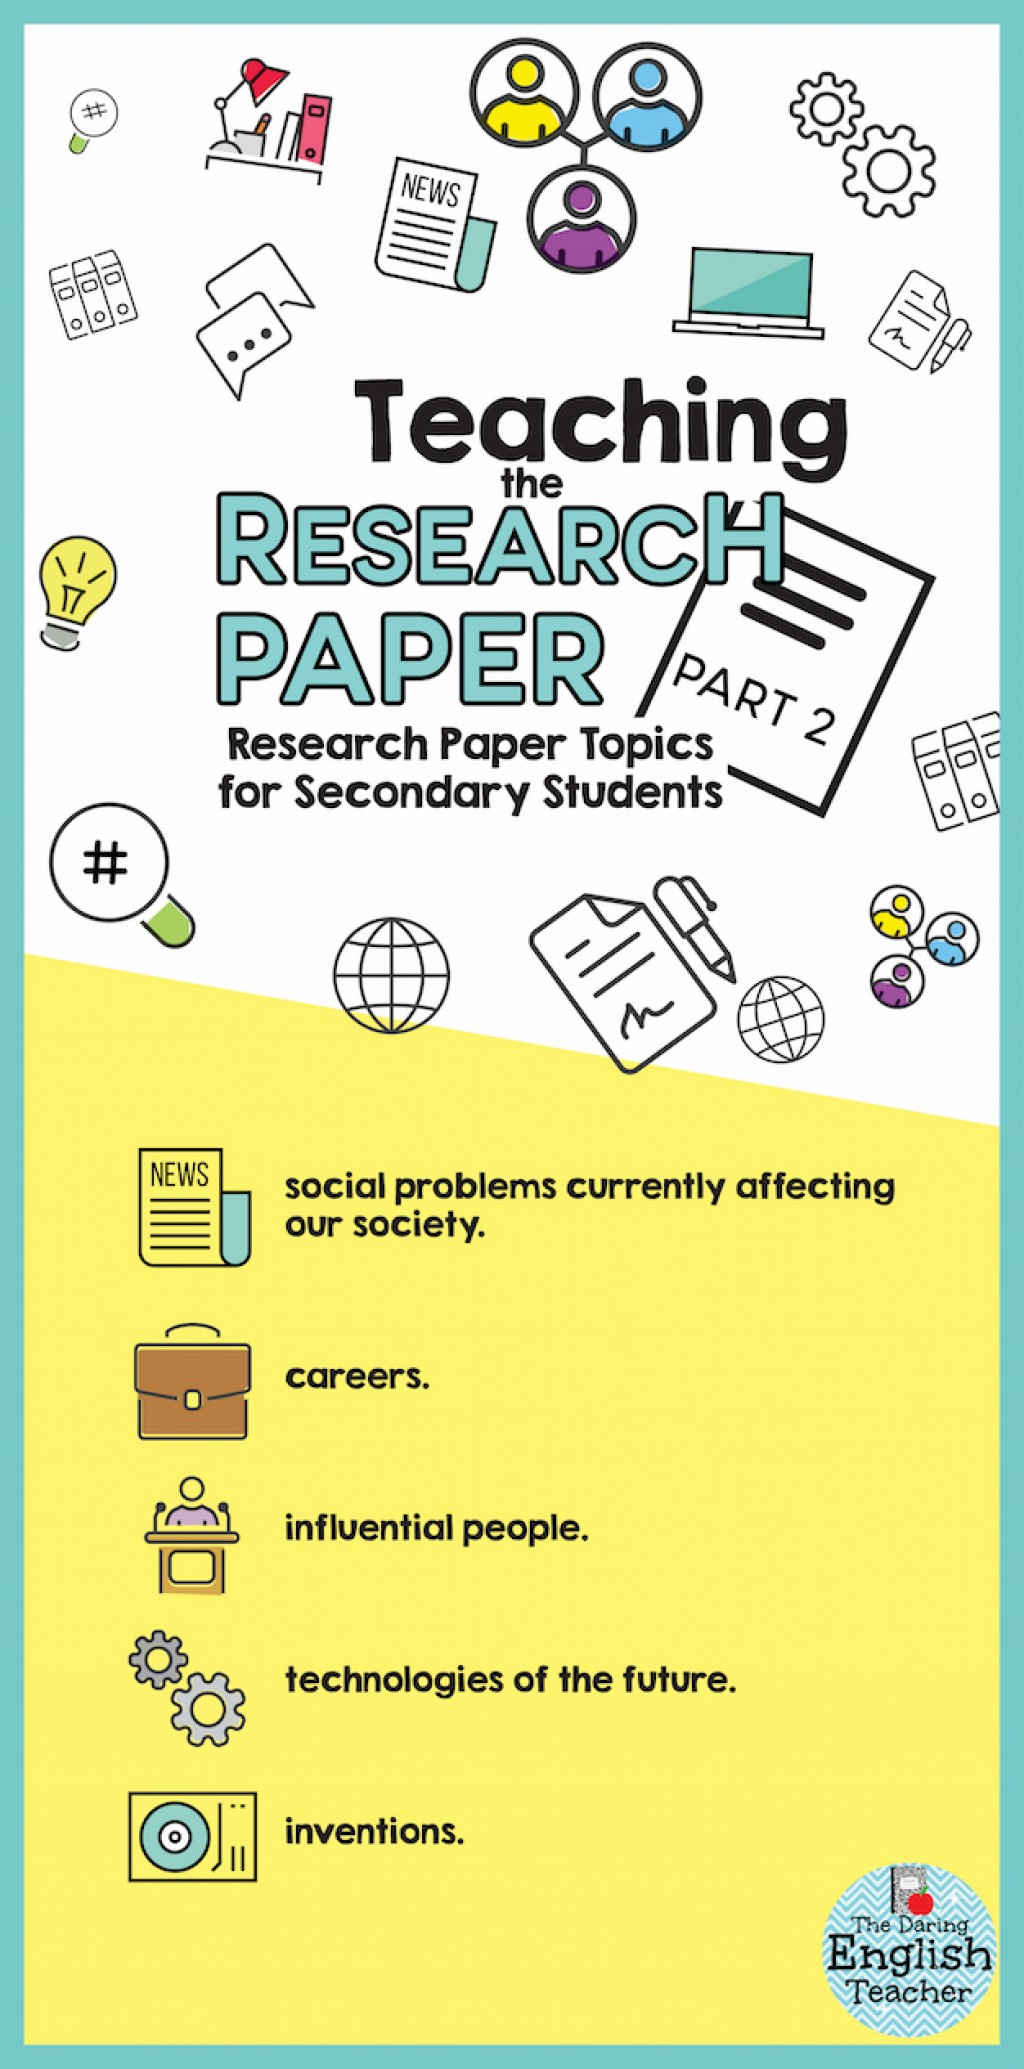 006 Research Paper Infographic2bp22b2 Topics For Magnificent English Linguistics Pdf 102 Large